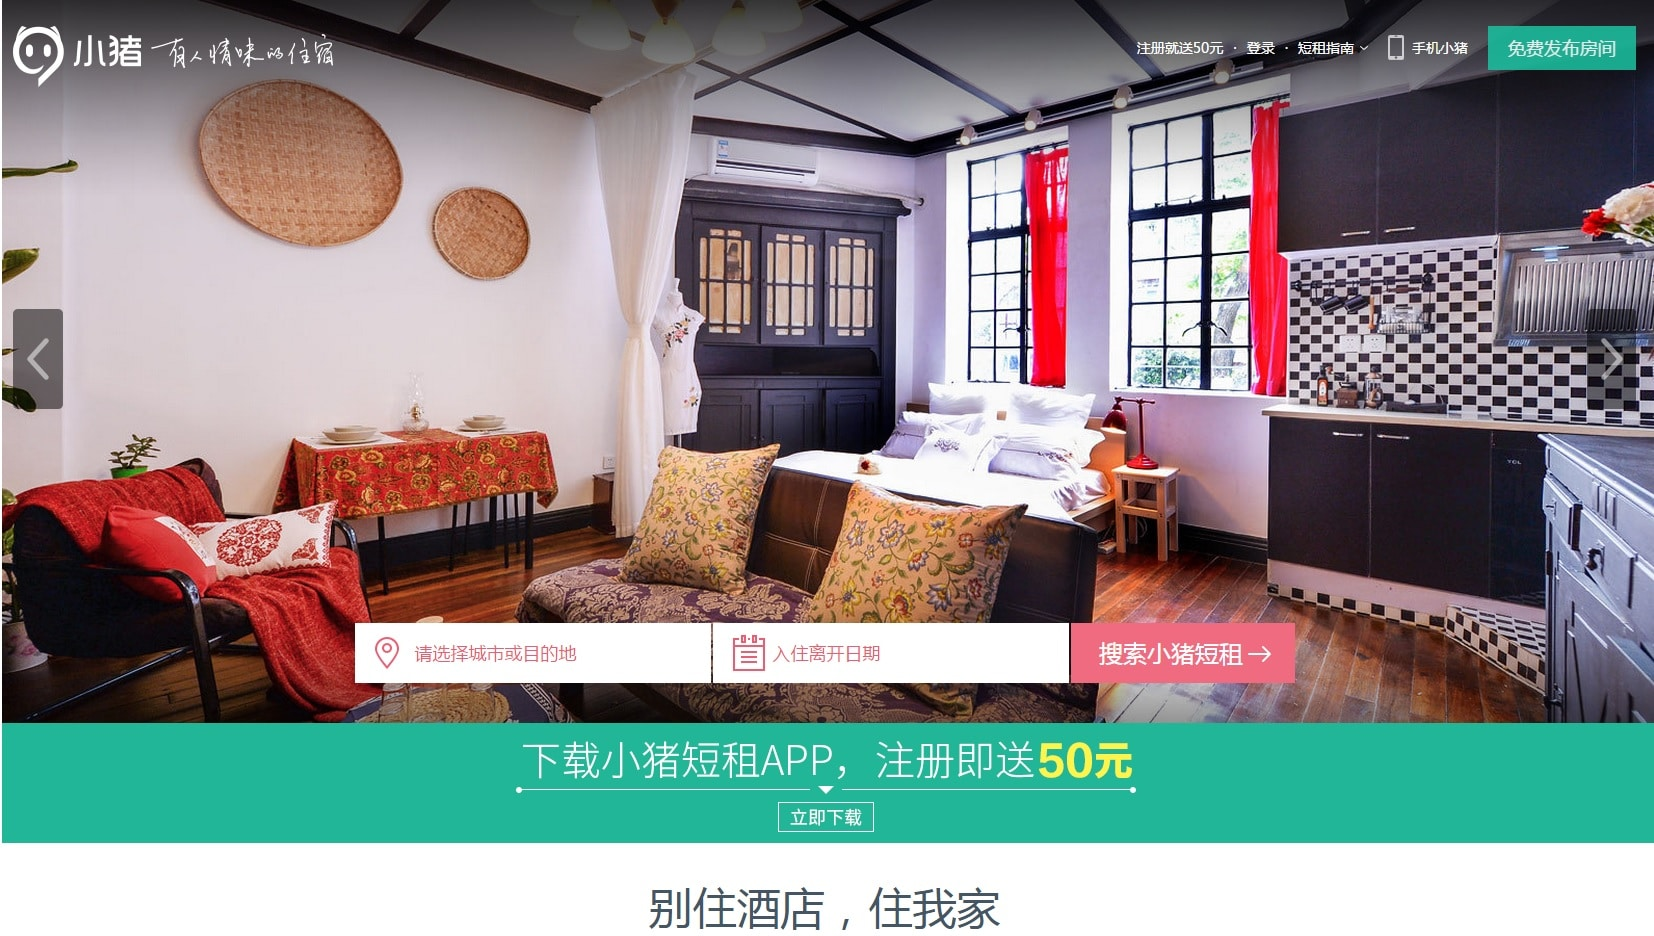 Xiaozu-airbnb-startup-sharing-economy-china-innovation-tech-startup